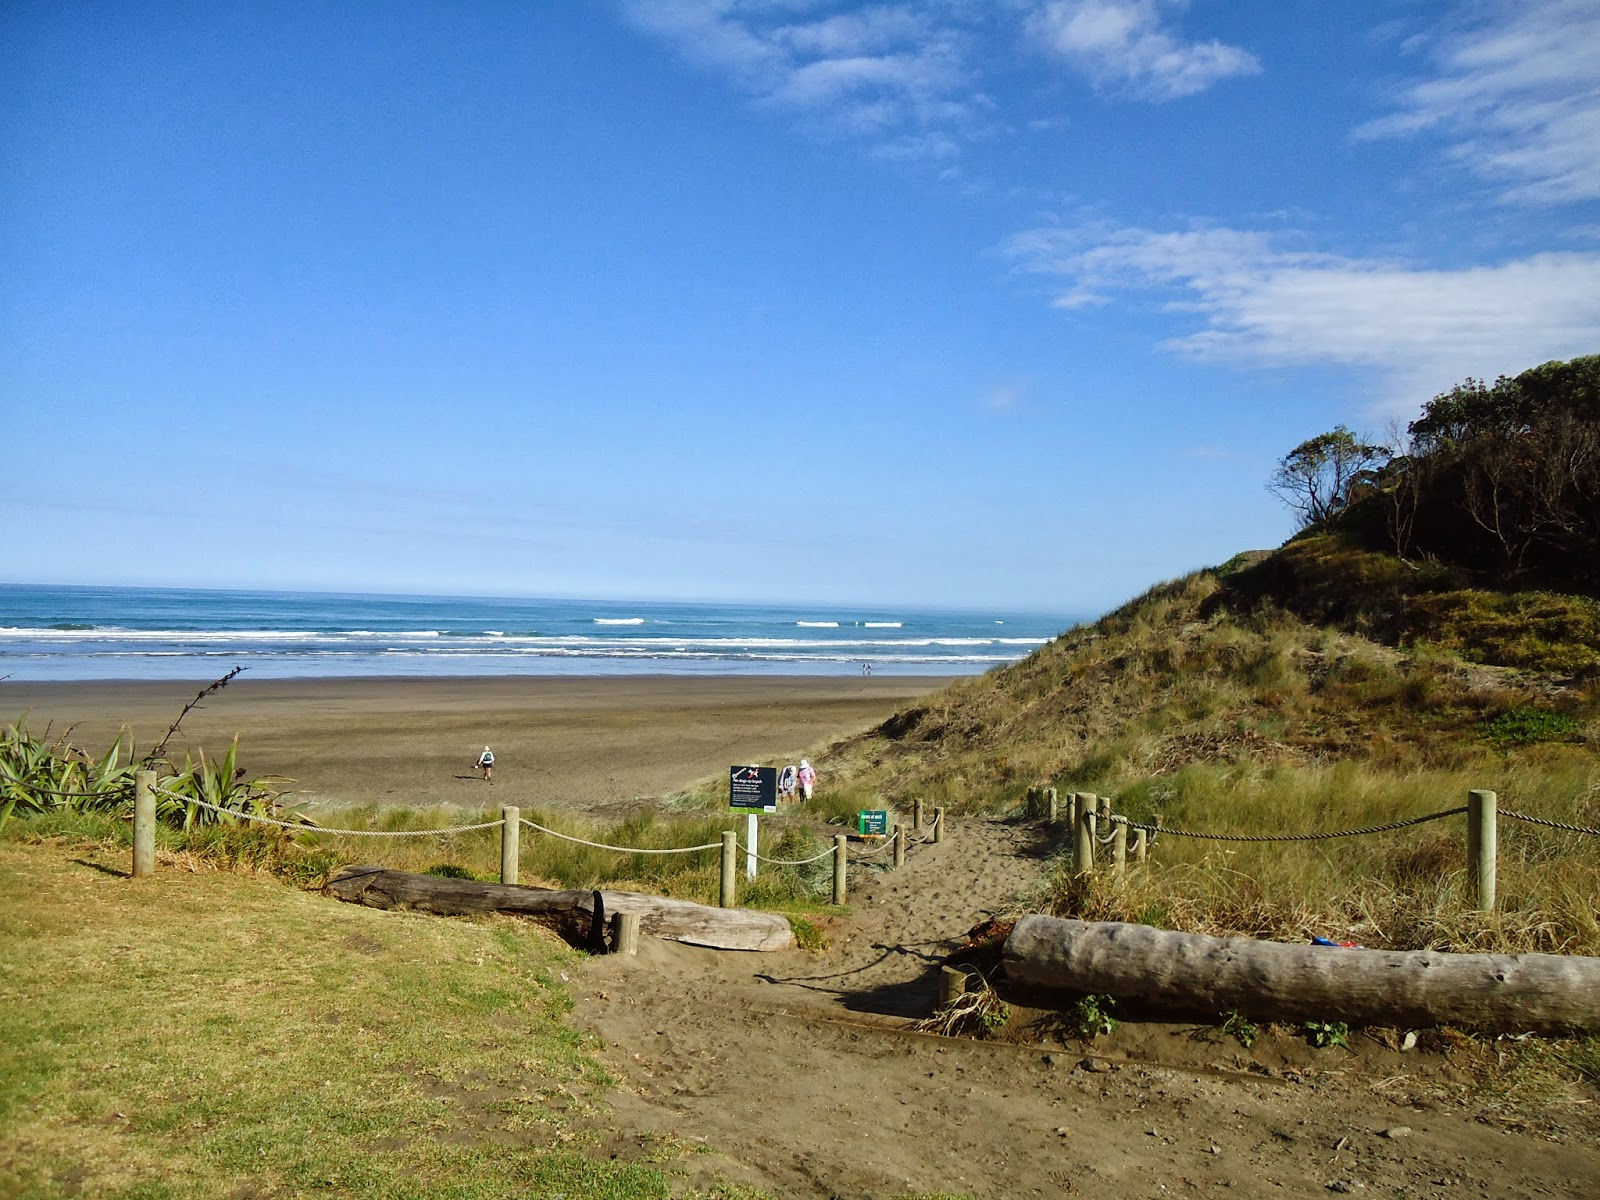 Muriwai beach, Auckland, New Zealand